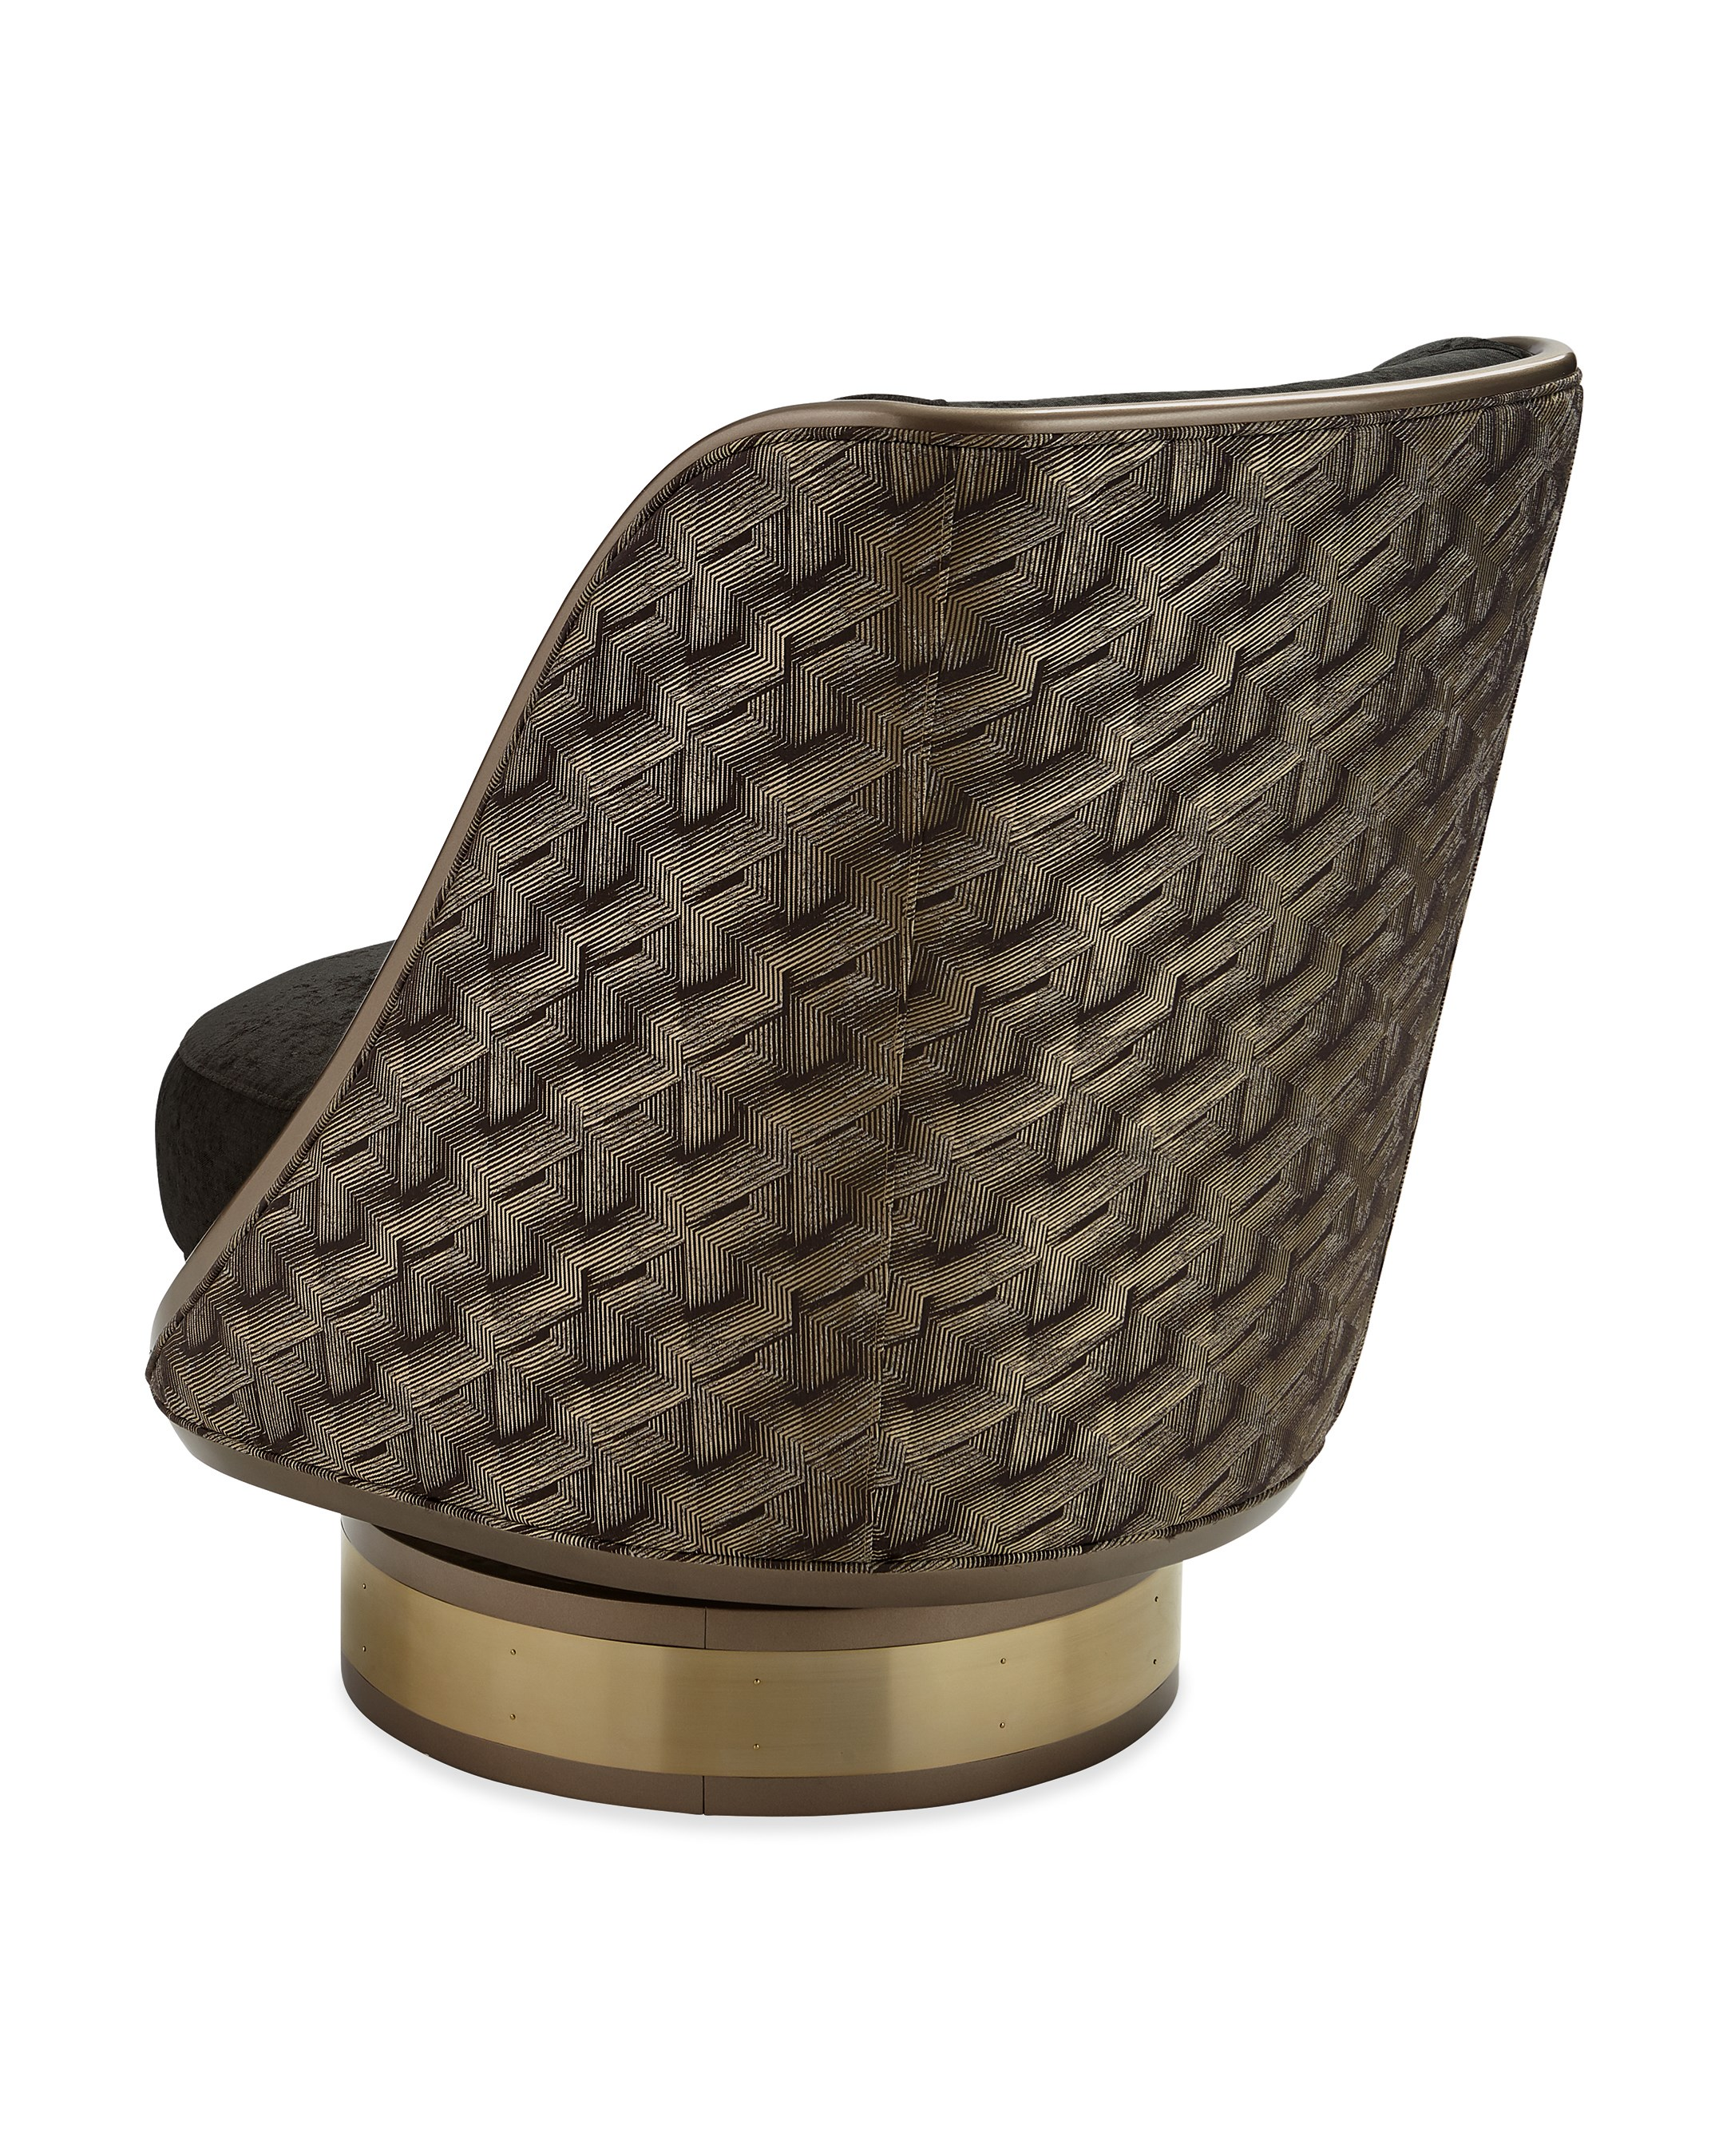 Admirable Go For A Spin Caracole Evergreenethics Interior Chair Design Evergreenethicsorg